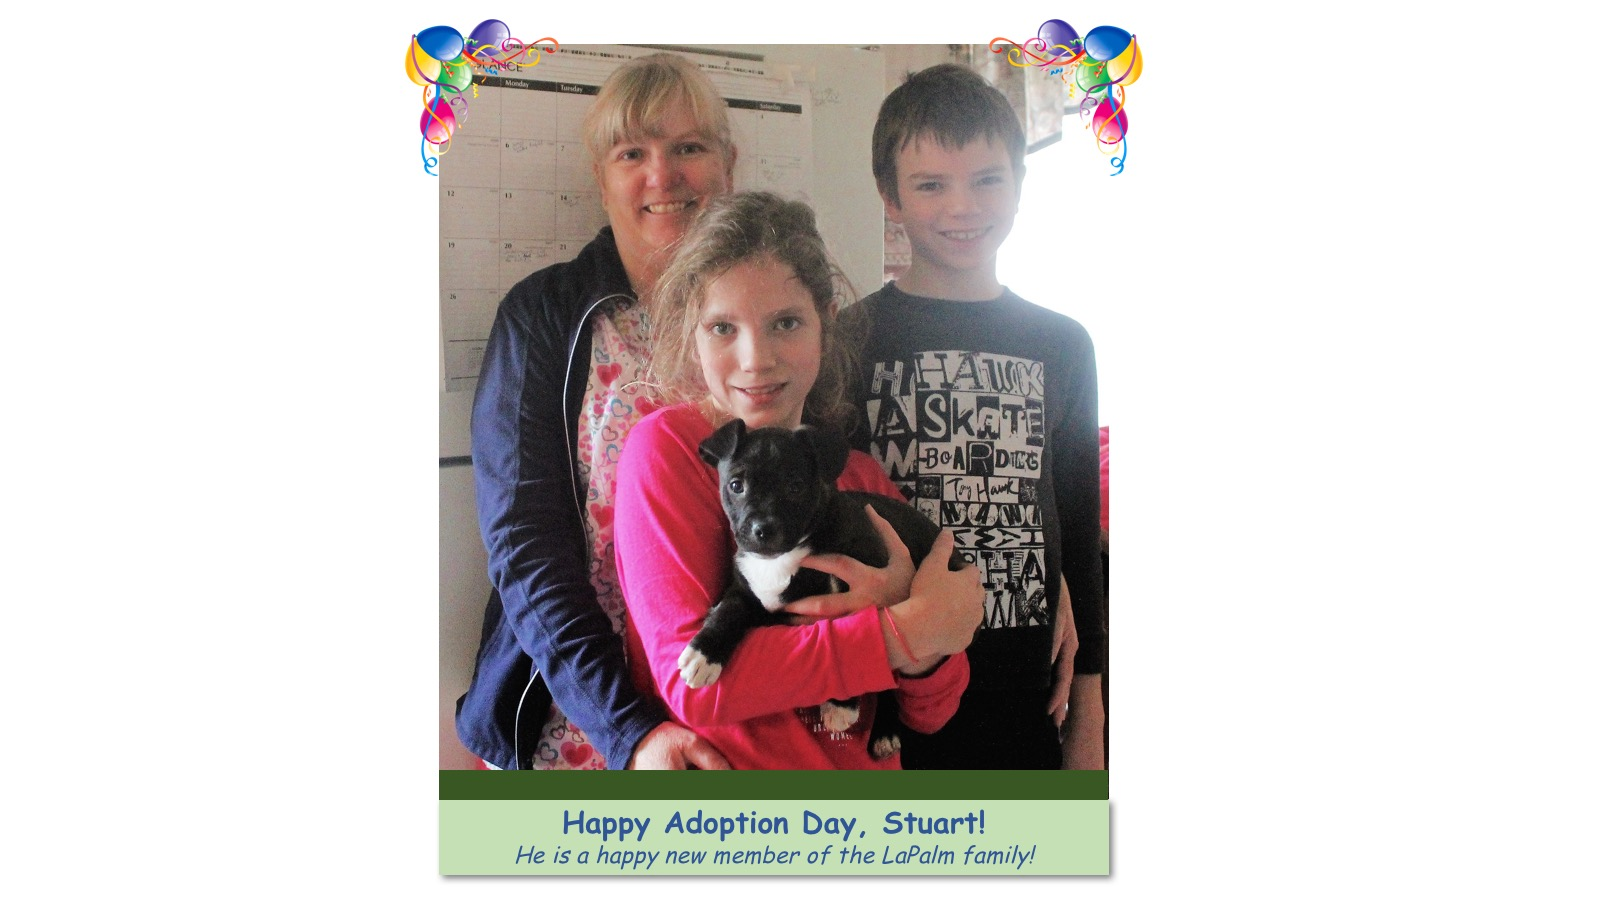 Stuart_Adoption_photo.jpg